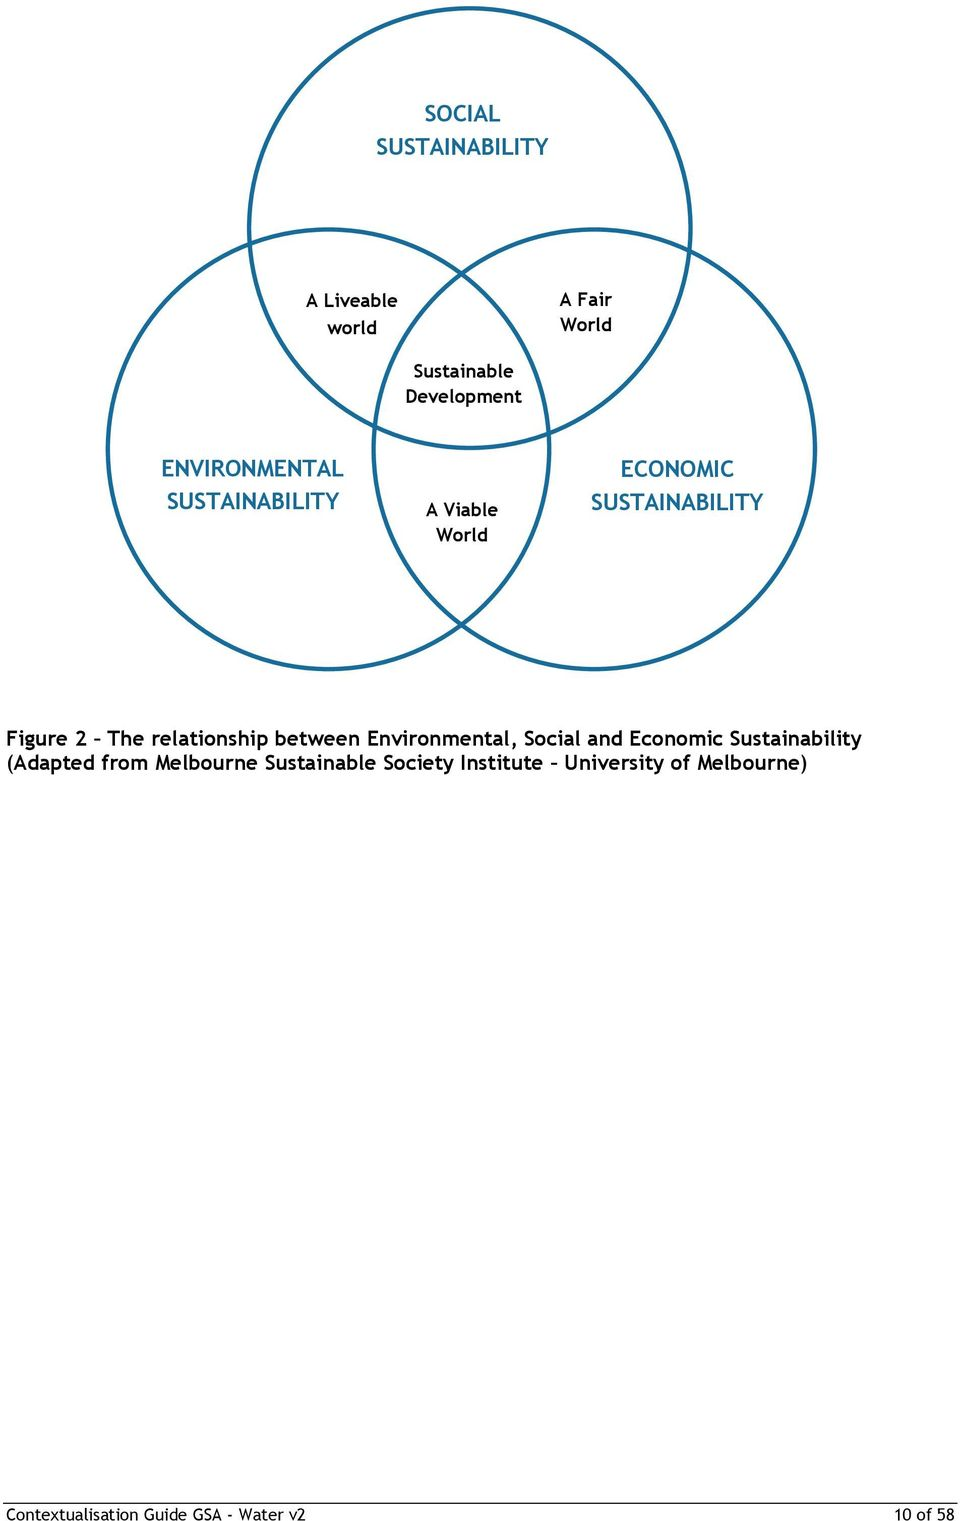 relationship between Environmental, Social and Economic Sustainability (Adapted from